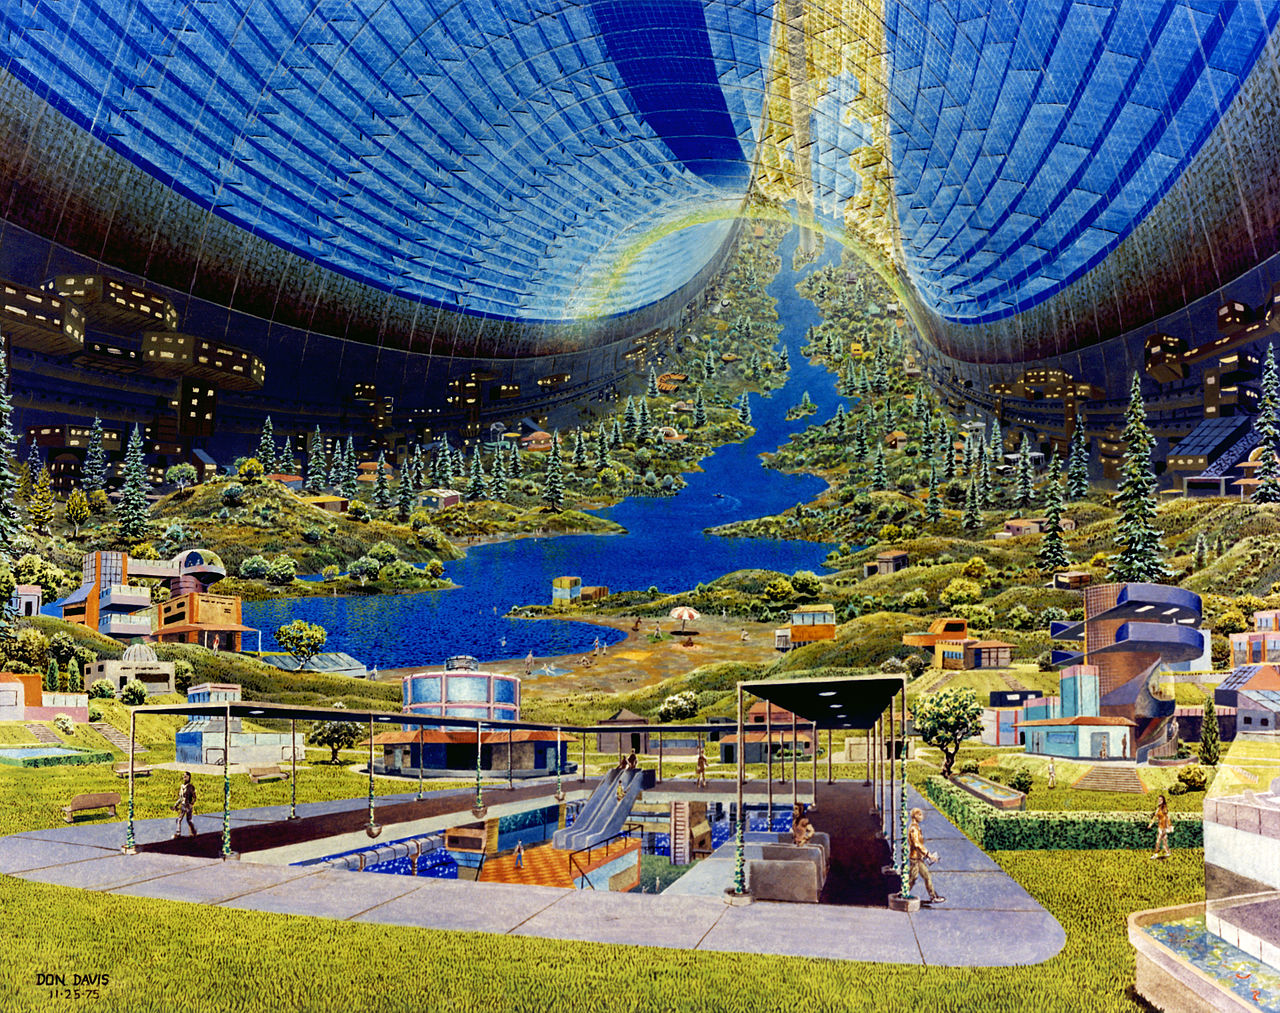 internal_view_of_the_stanford_torus